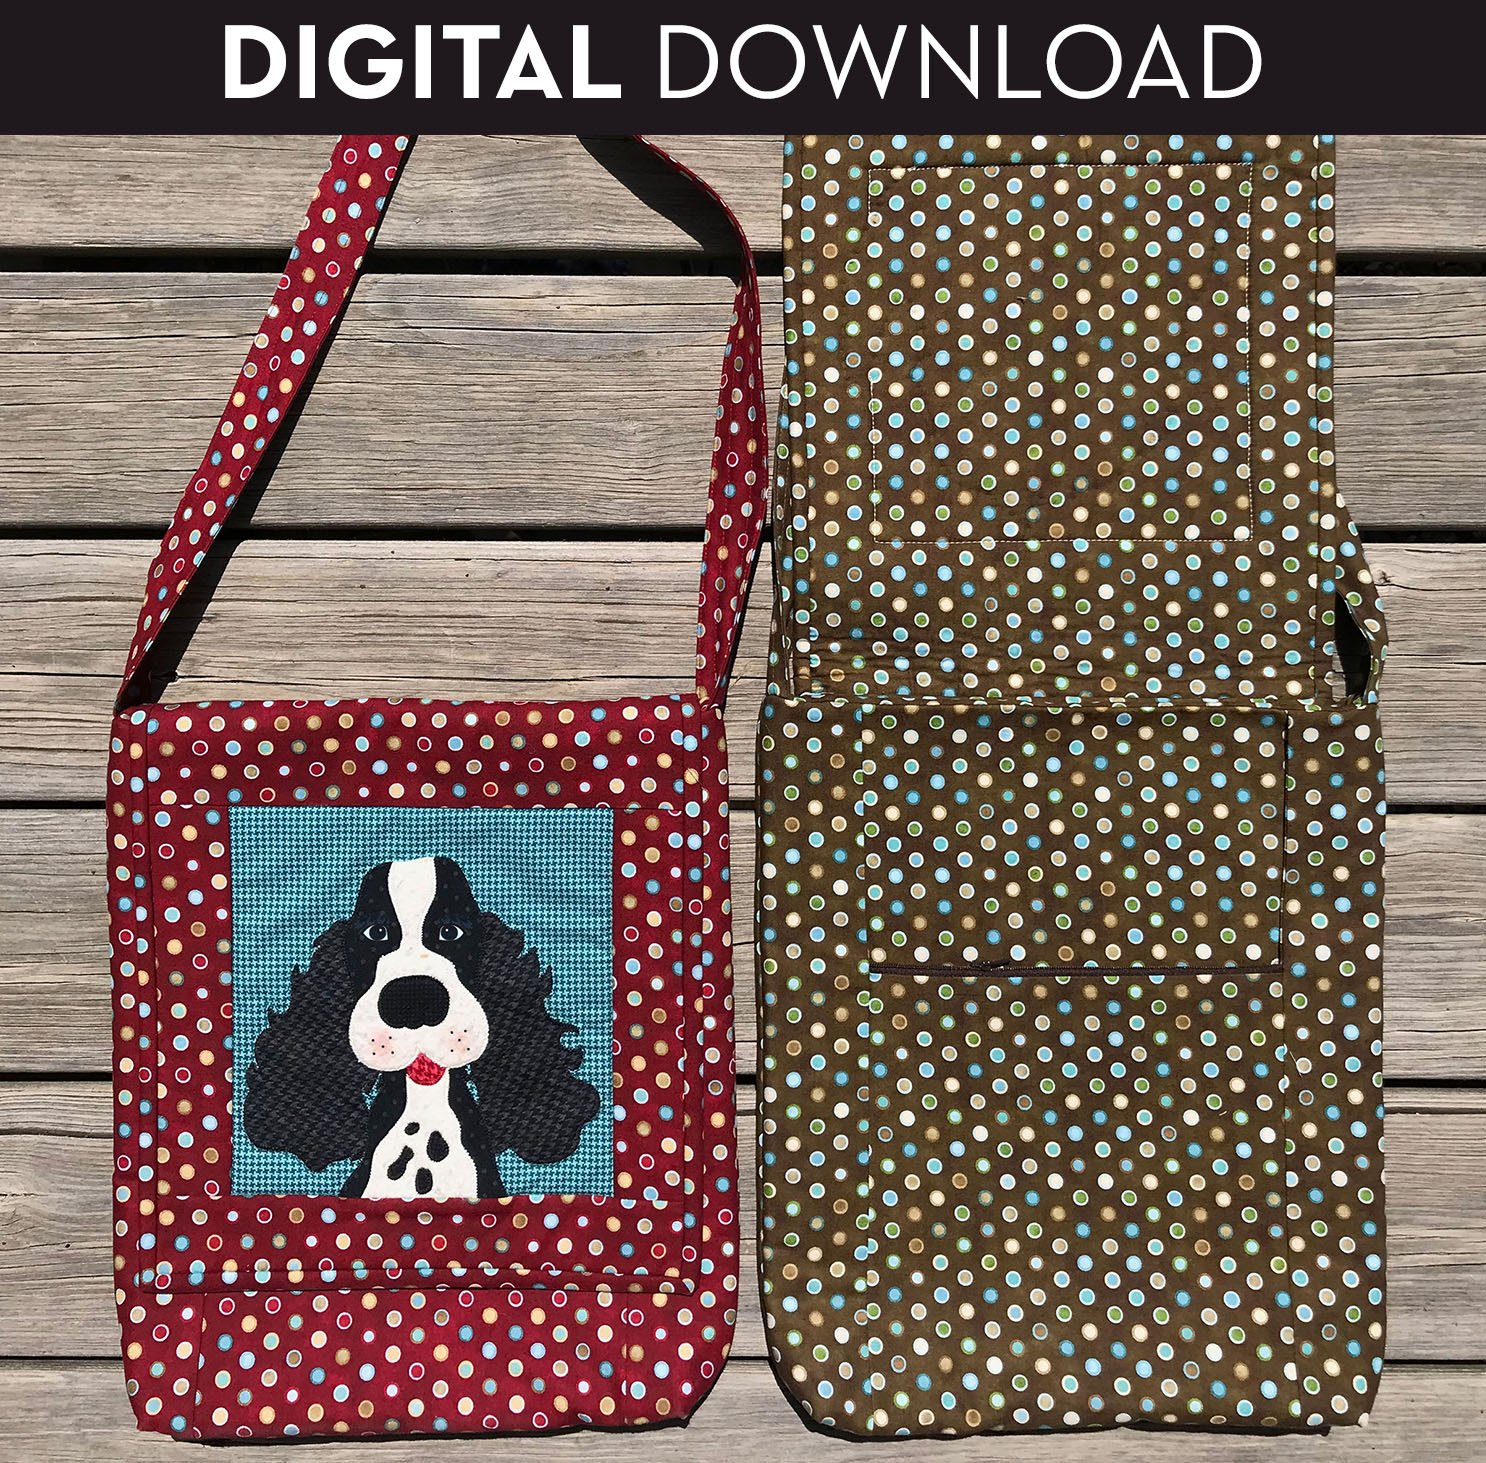 Doggy Bag - Download (Appliques not included)